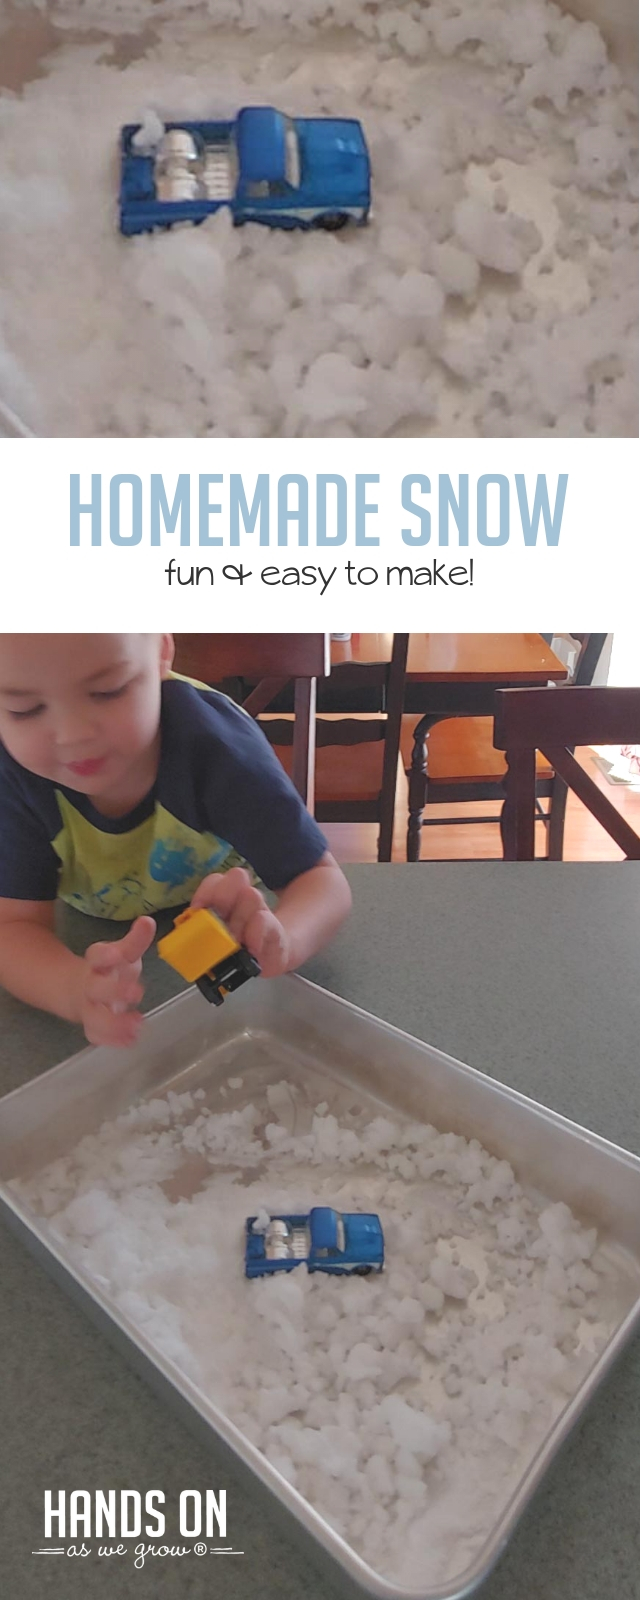 Have chilly winter fun inside with an easy homemade snow recipe and activity! Drive toy trucks through snow drifts and scoop it into tiny snowmen with your preschooler or toddler!